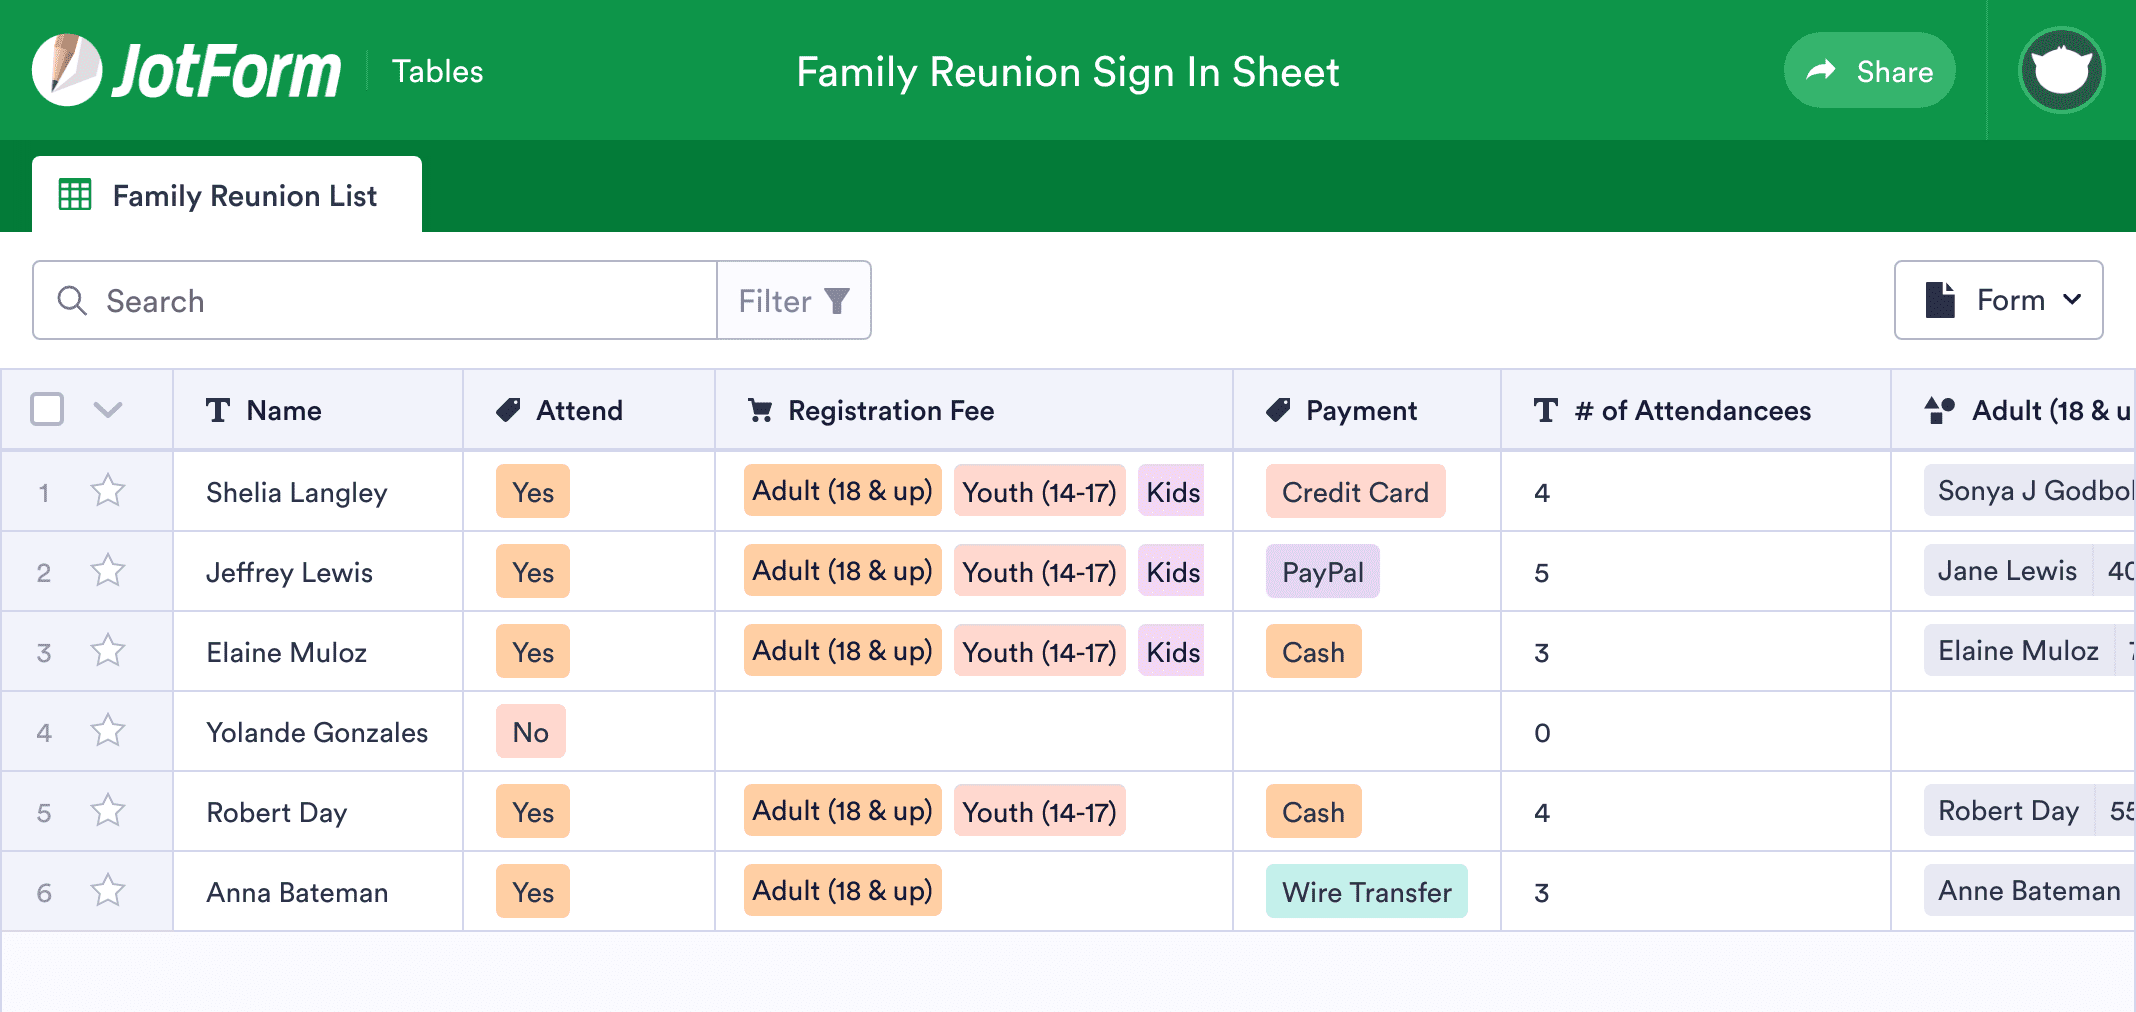 Family Reunion Sign In Sheet